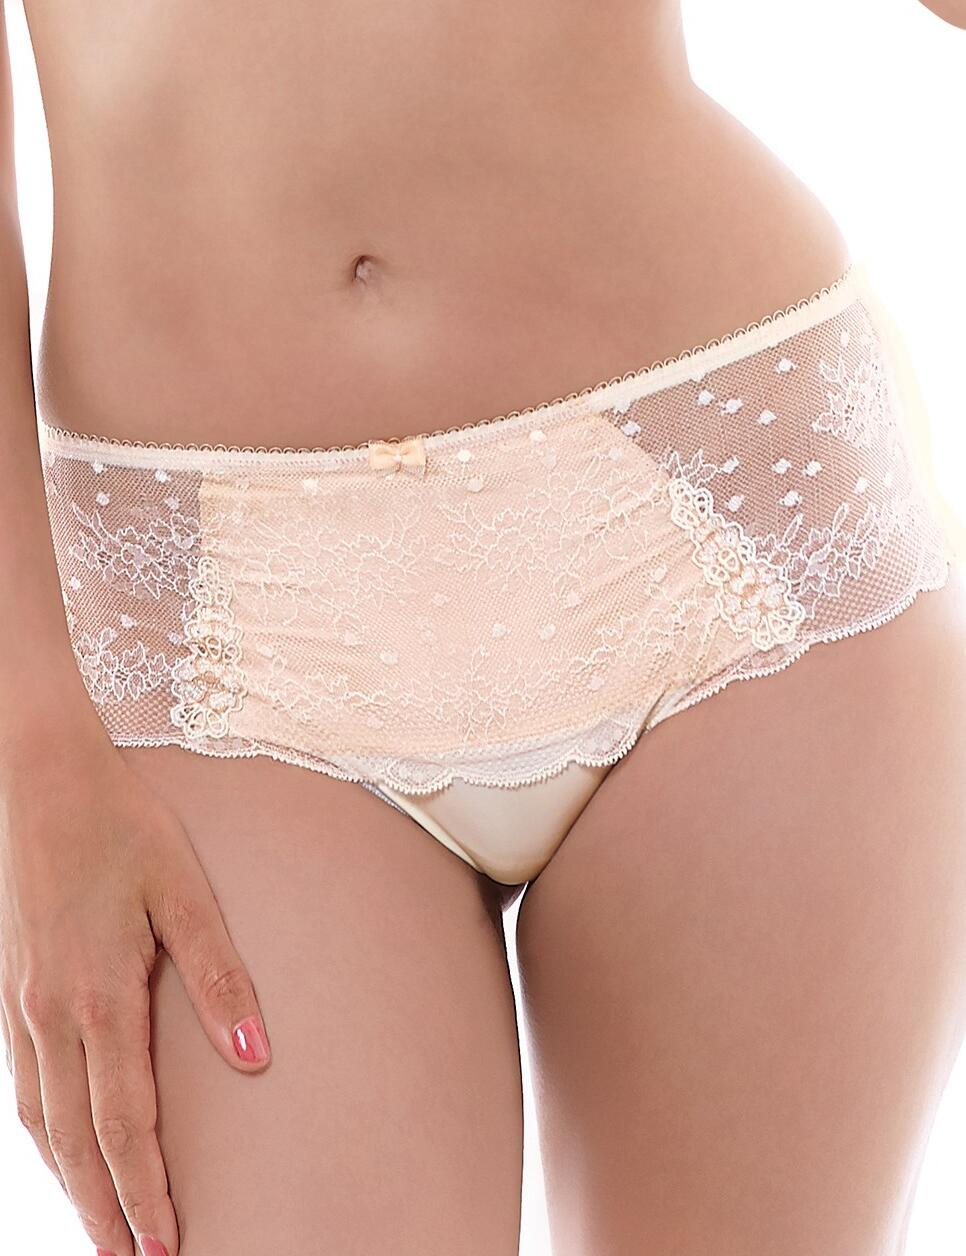 Fantasie Lingerie Ivana 9027 Deep Thong Knickers In Oyster - Oyster